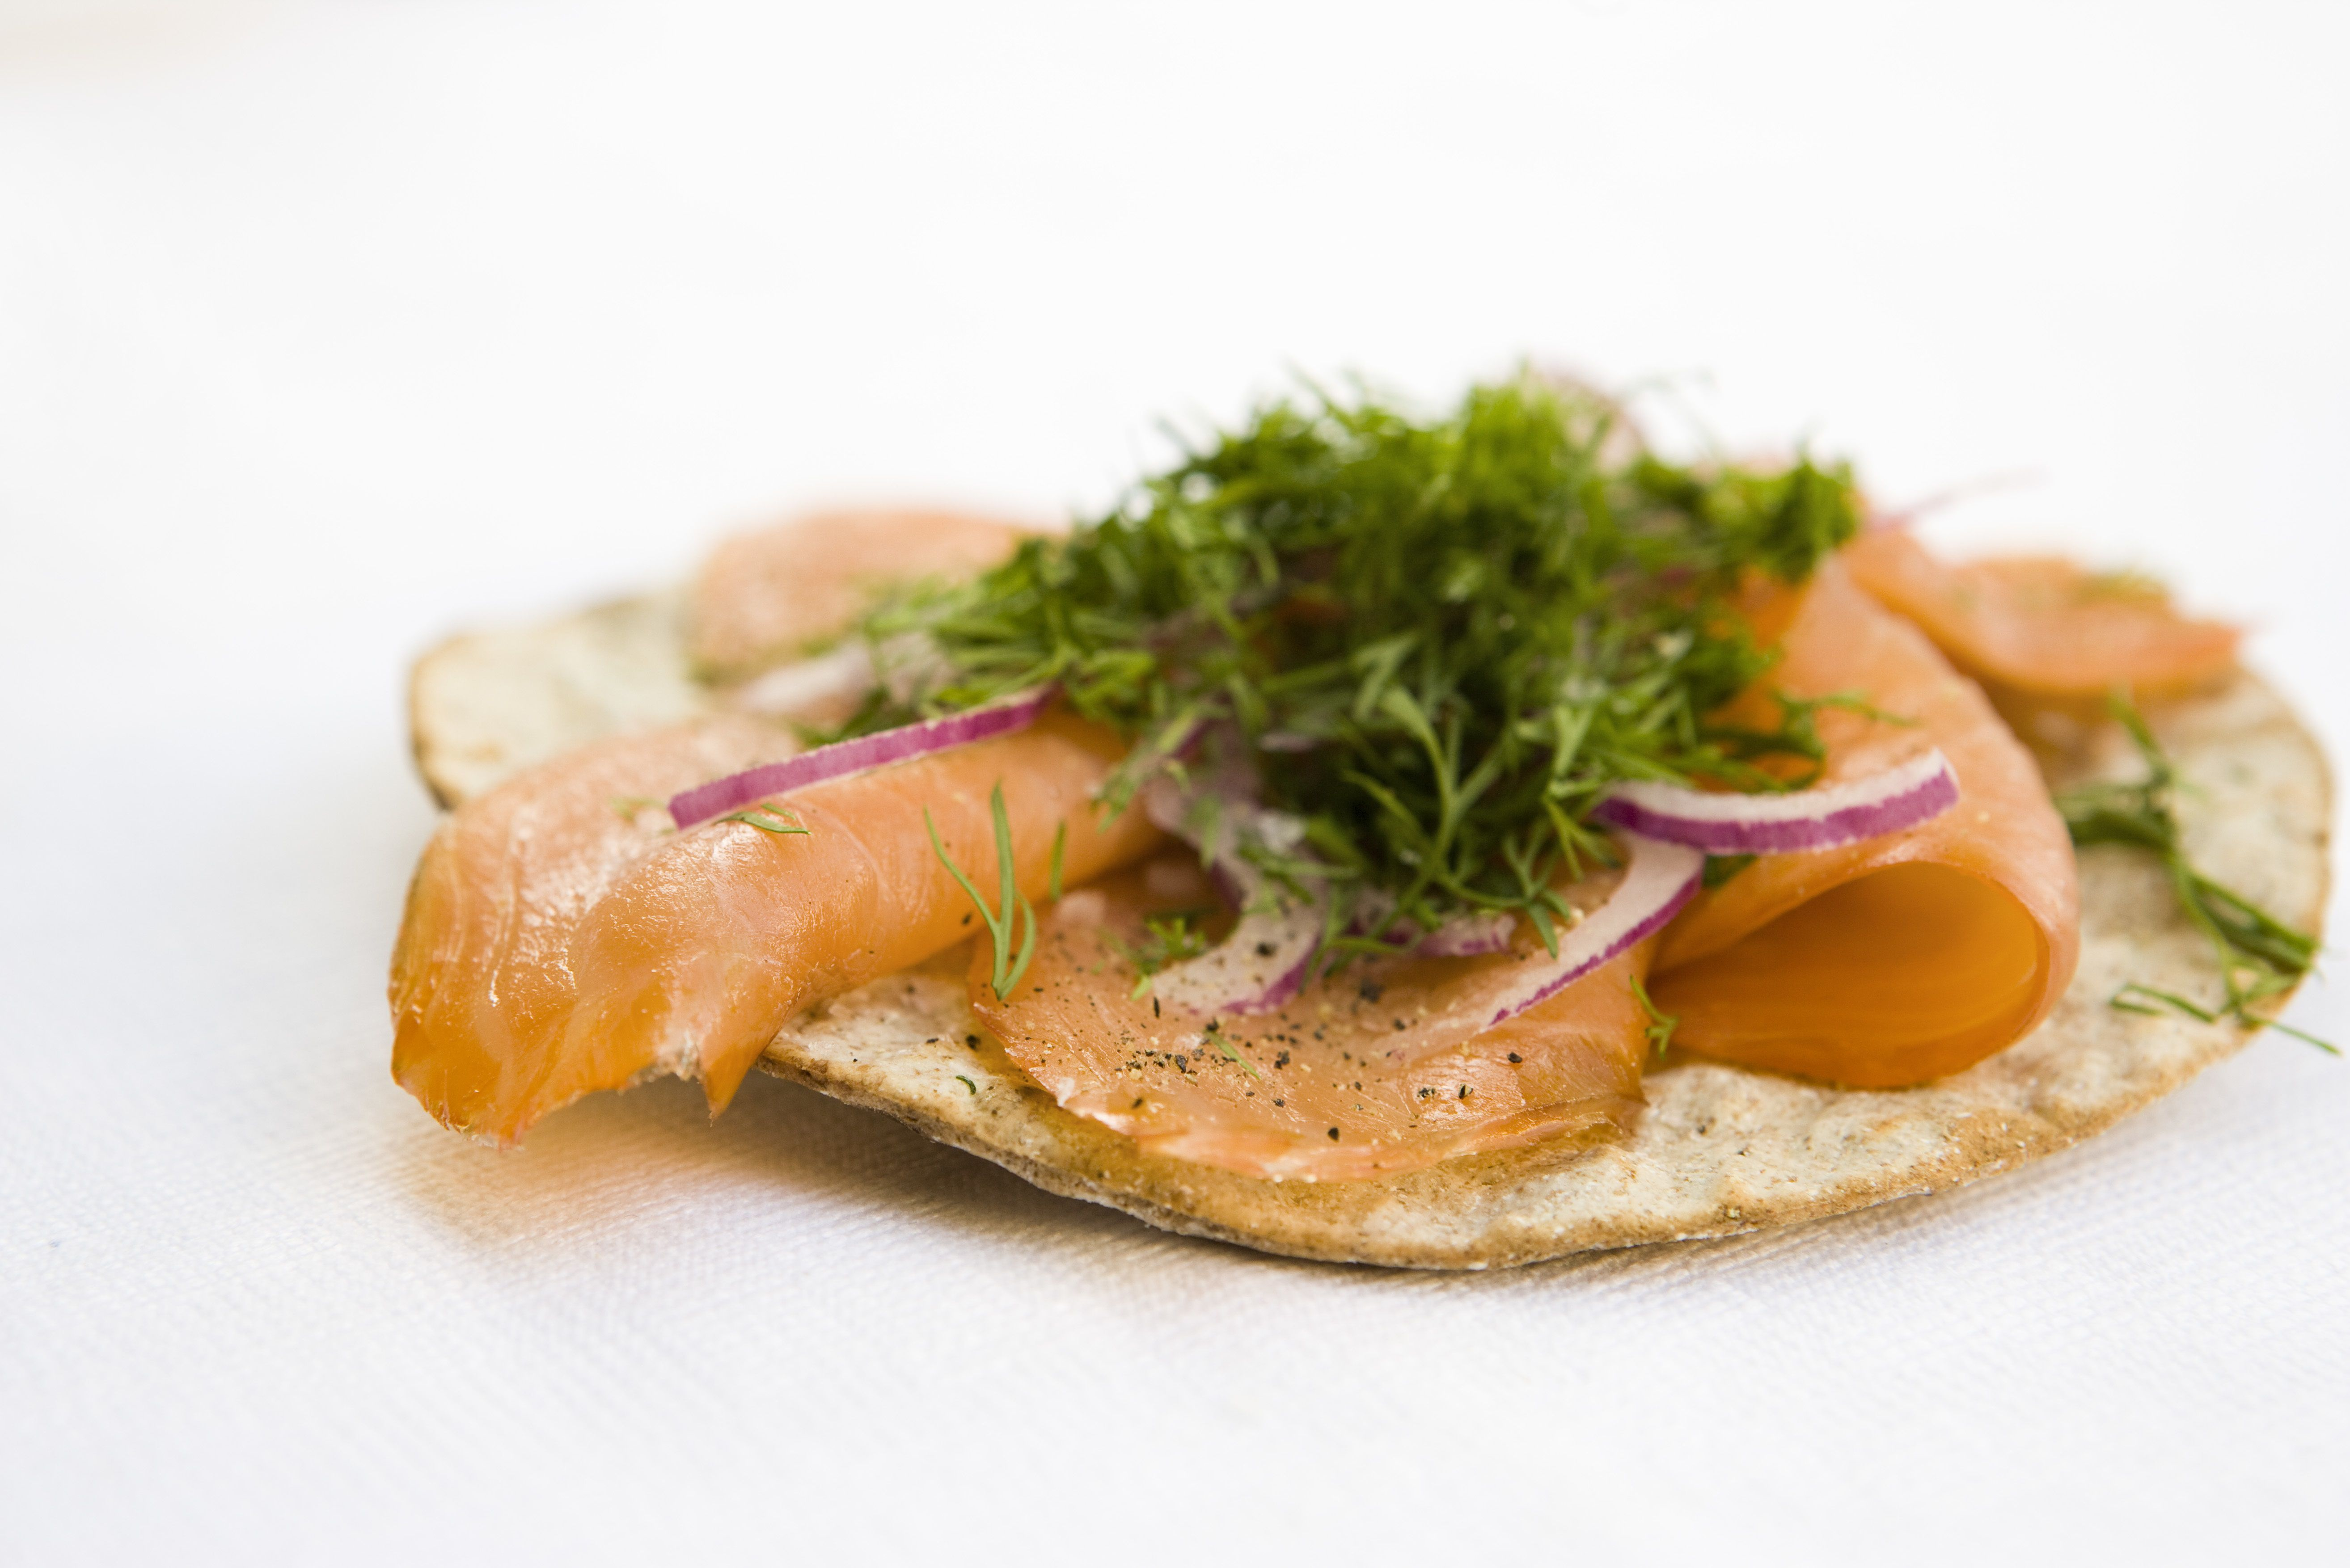 Crisp bread topped with smoked salmon and fresh dill